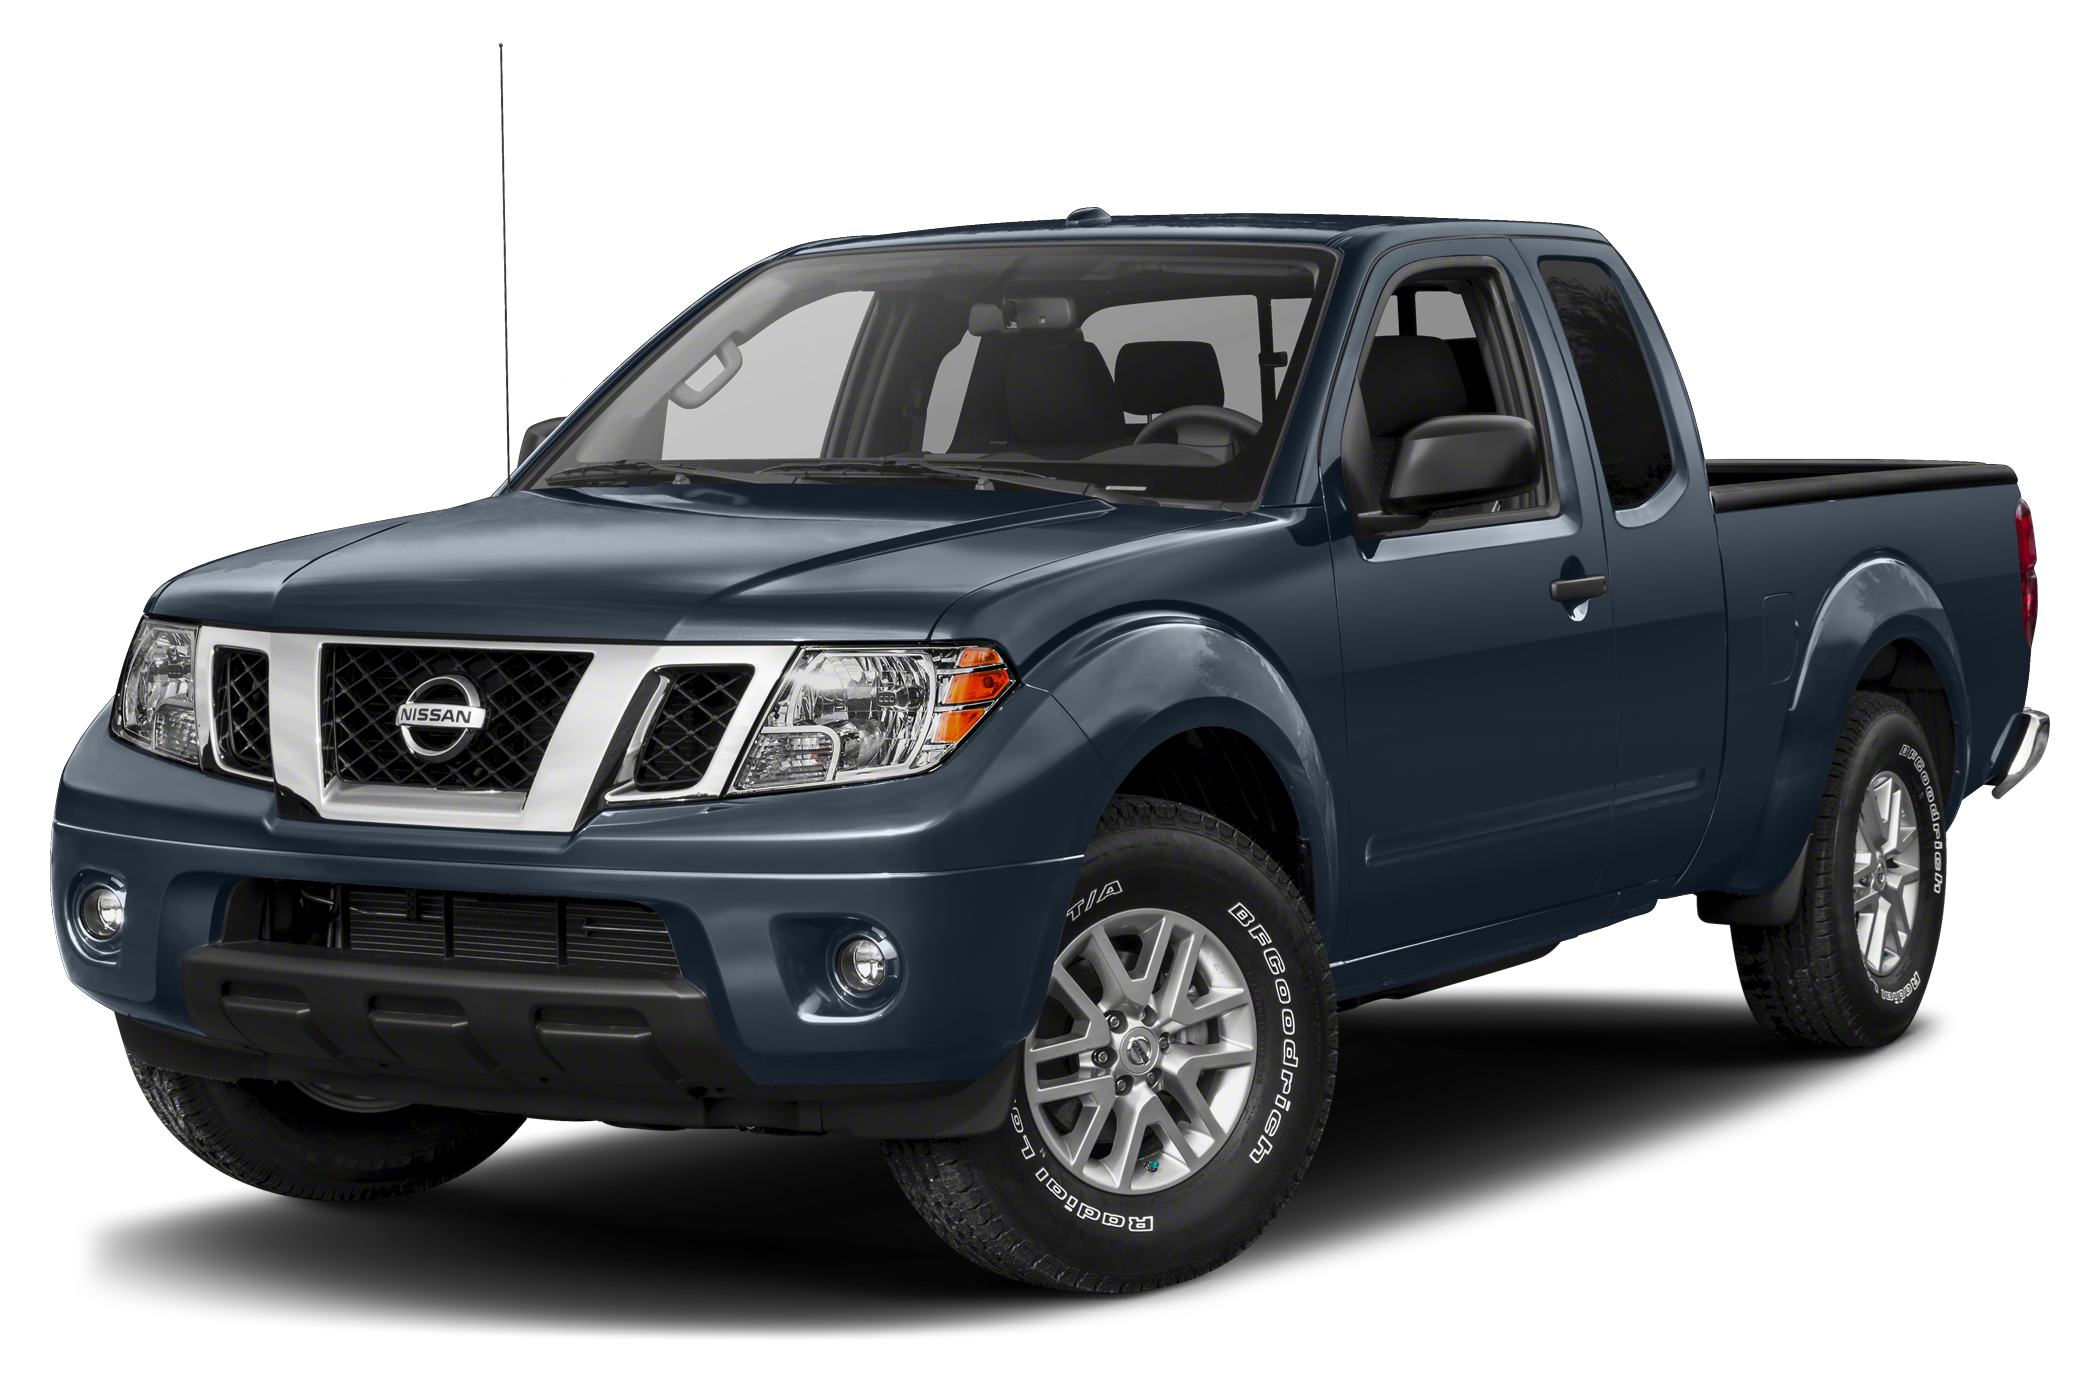 Compare Nissan/Frontier to null/null